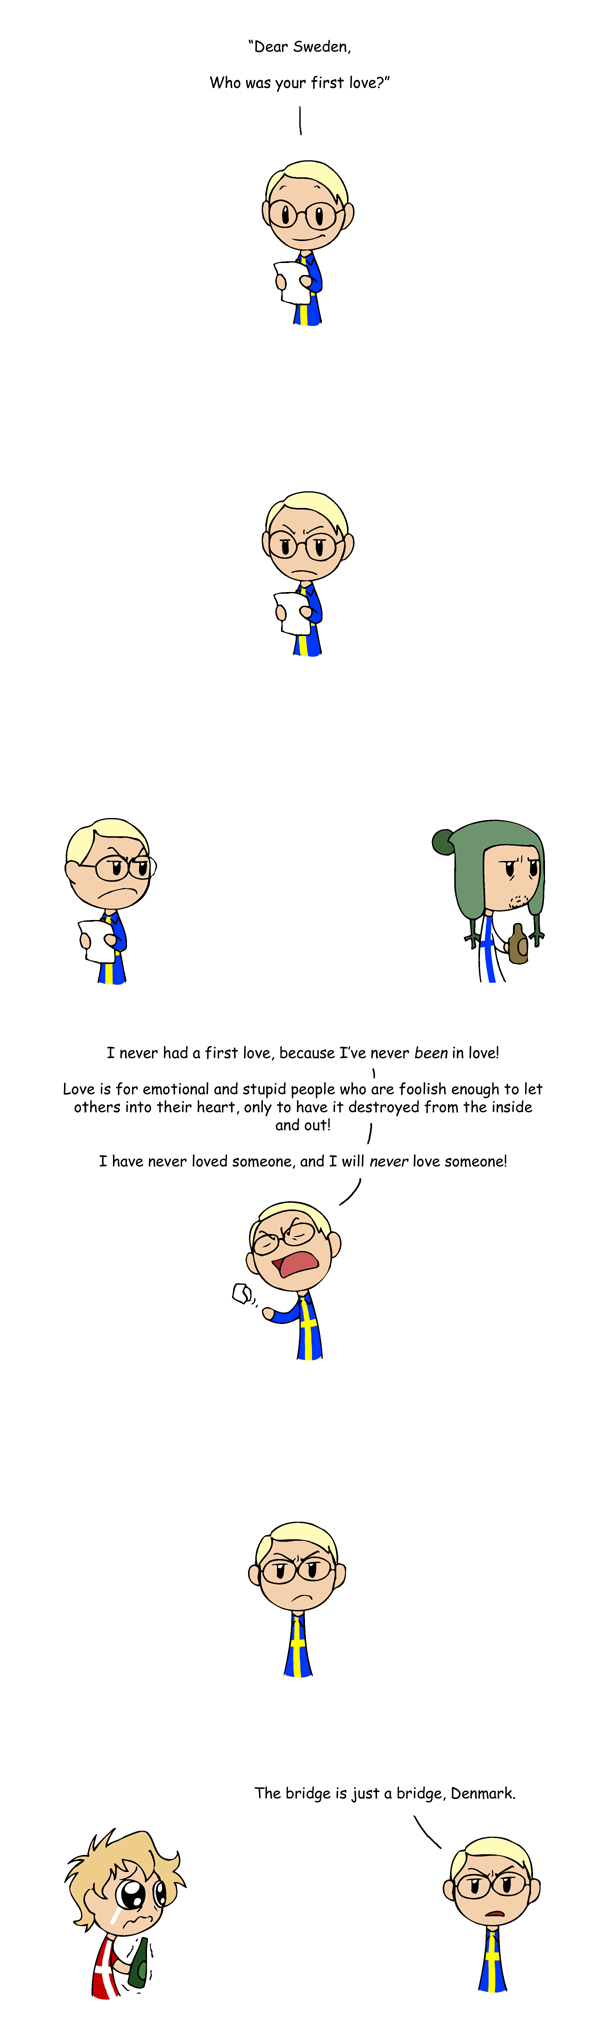 First Love satwcomic.com